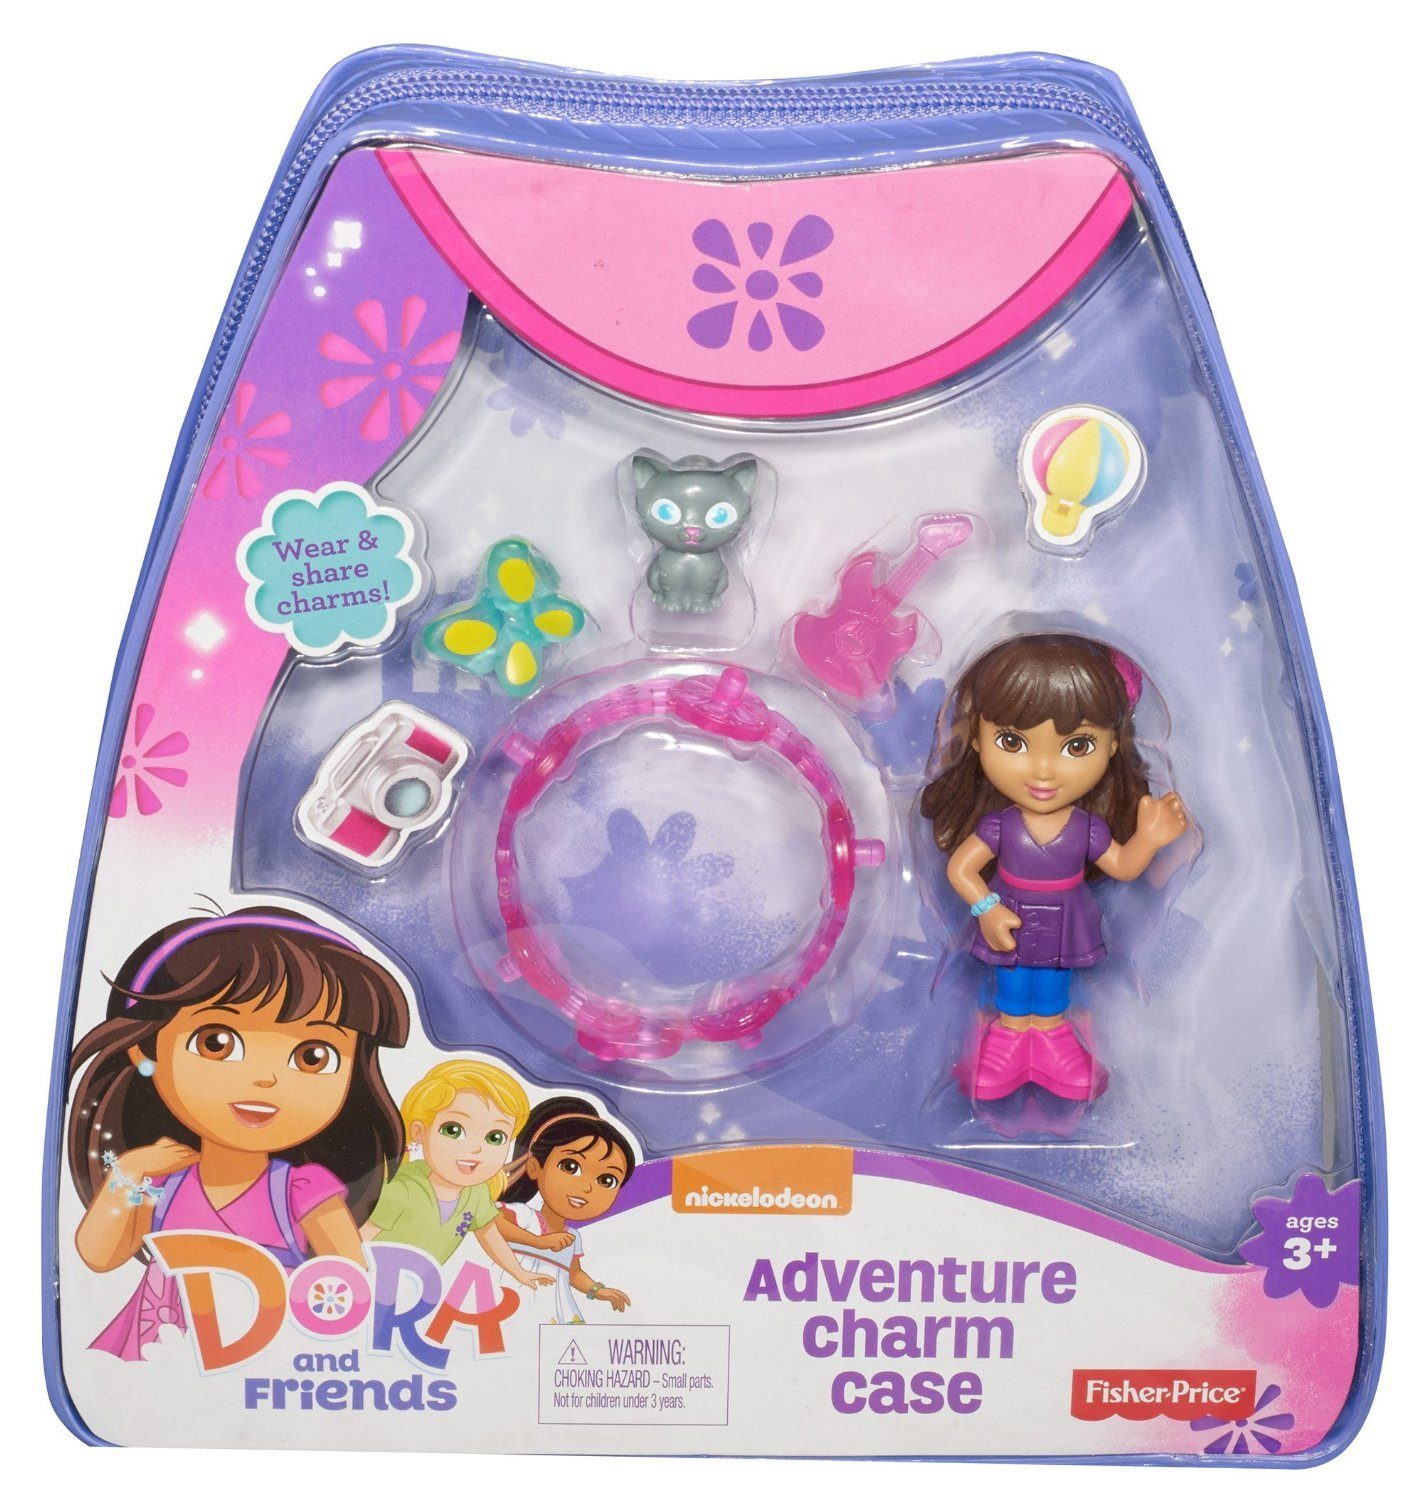 Fisher-Price Nickelodeon Dora and Friends Adventure Charm Case Only $4.54 (Reg. $12.99)!